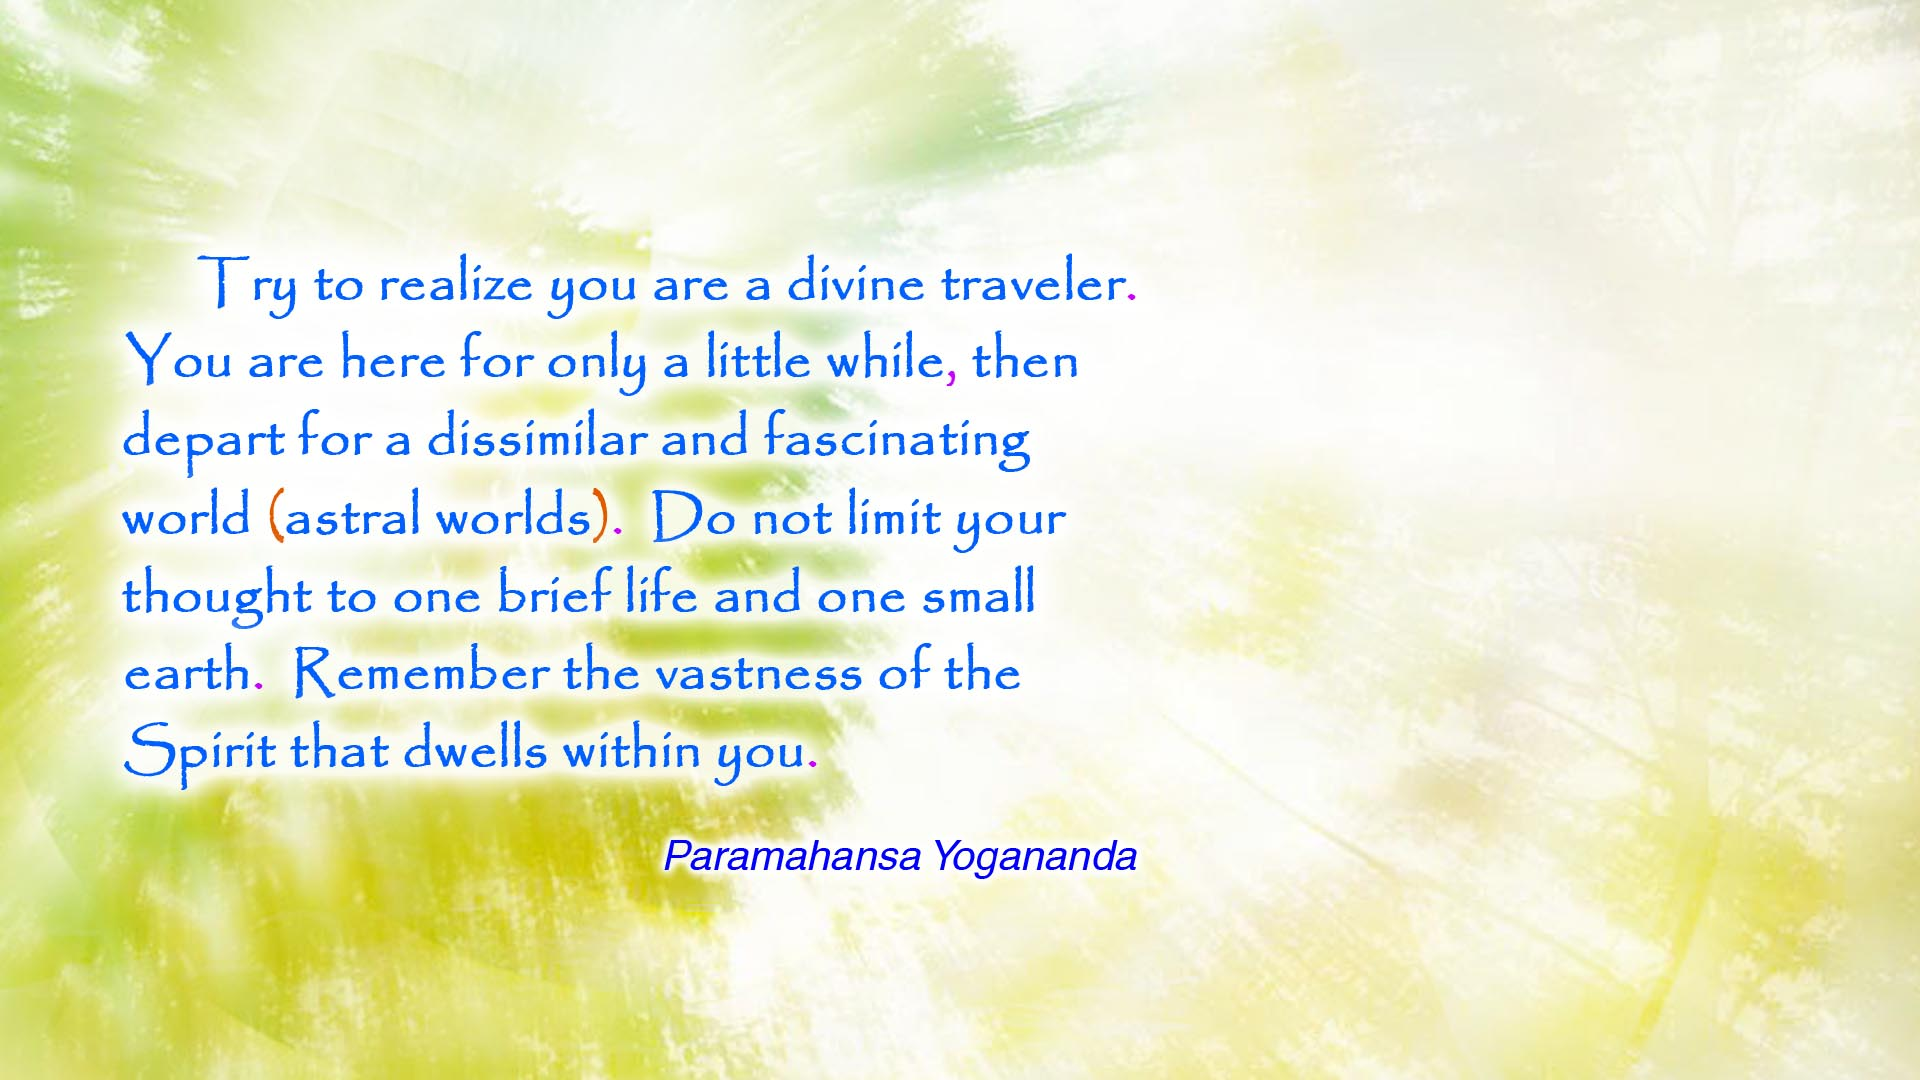 Yogananda divine traveler wallpaper